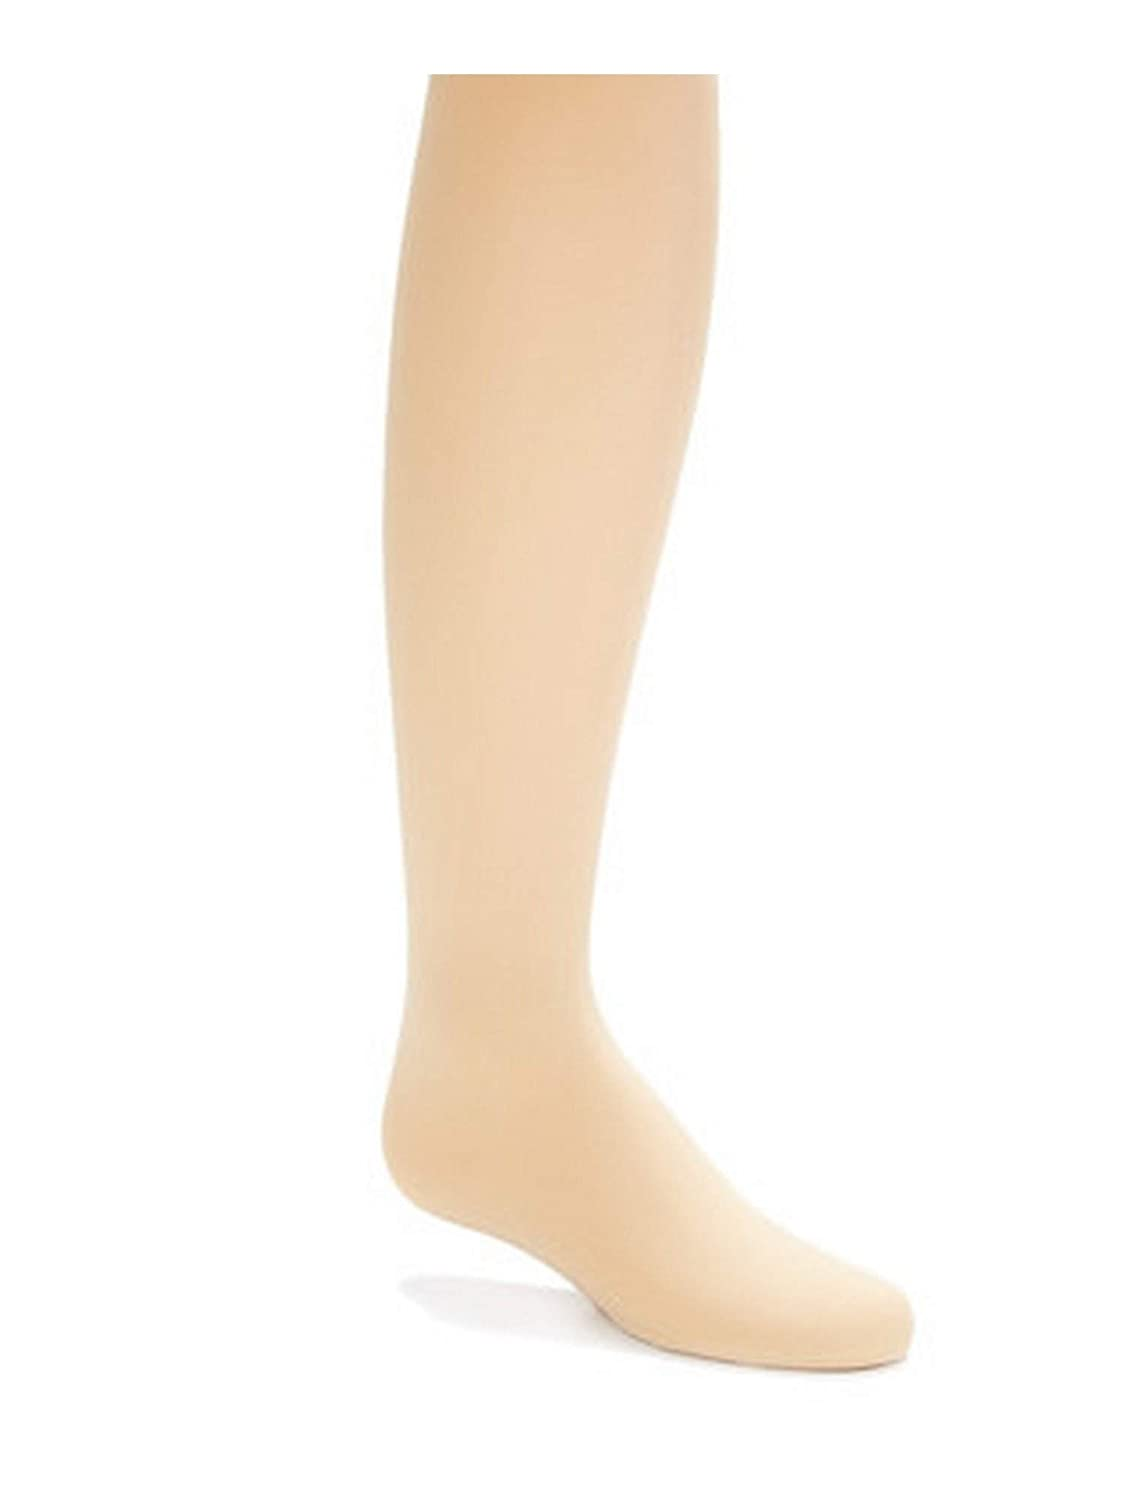 Wenchoice Big Girls Tan Solid Color Stretchy Soft Footed Tights 8-15